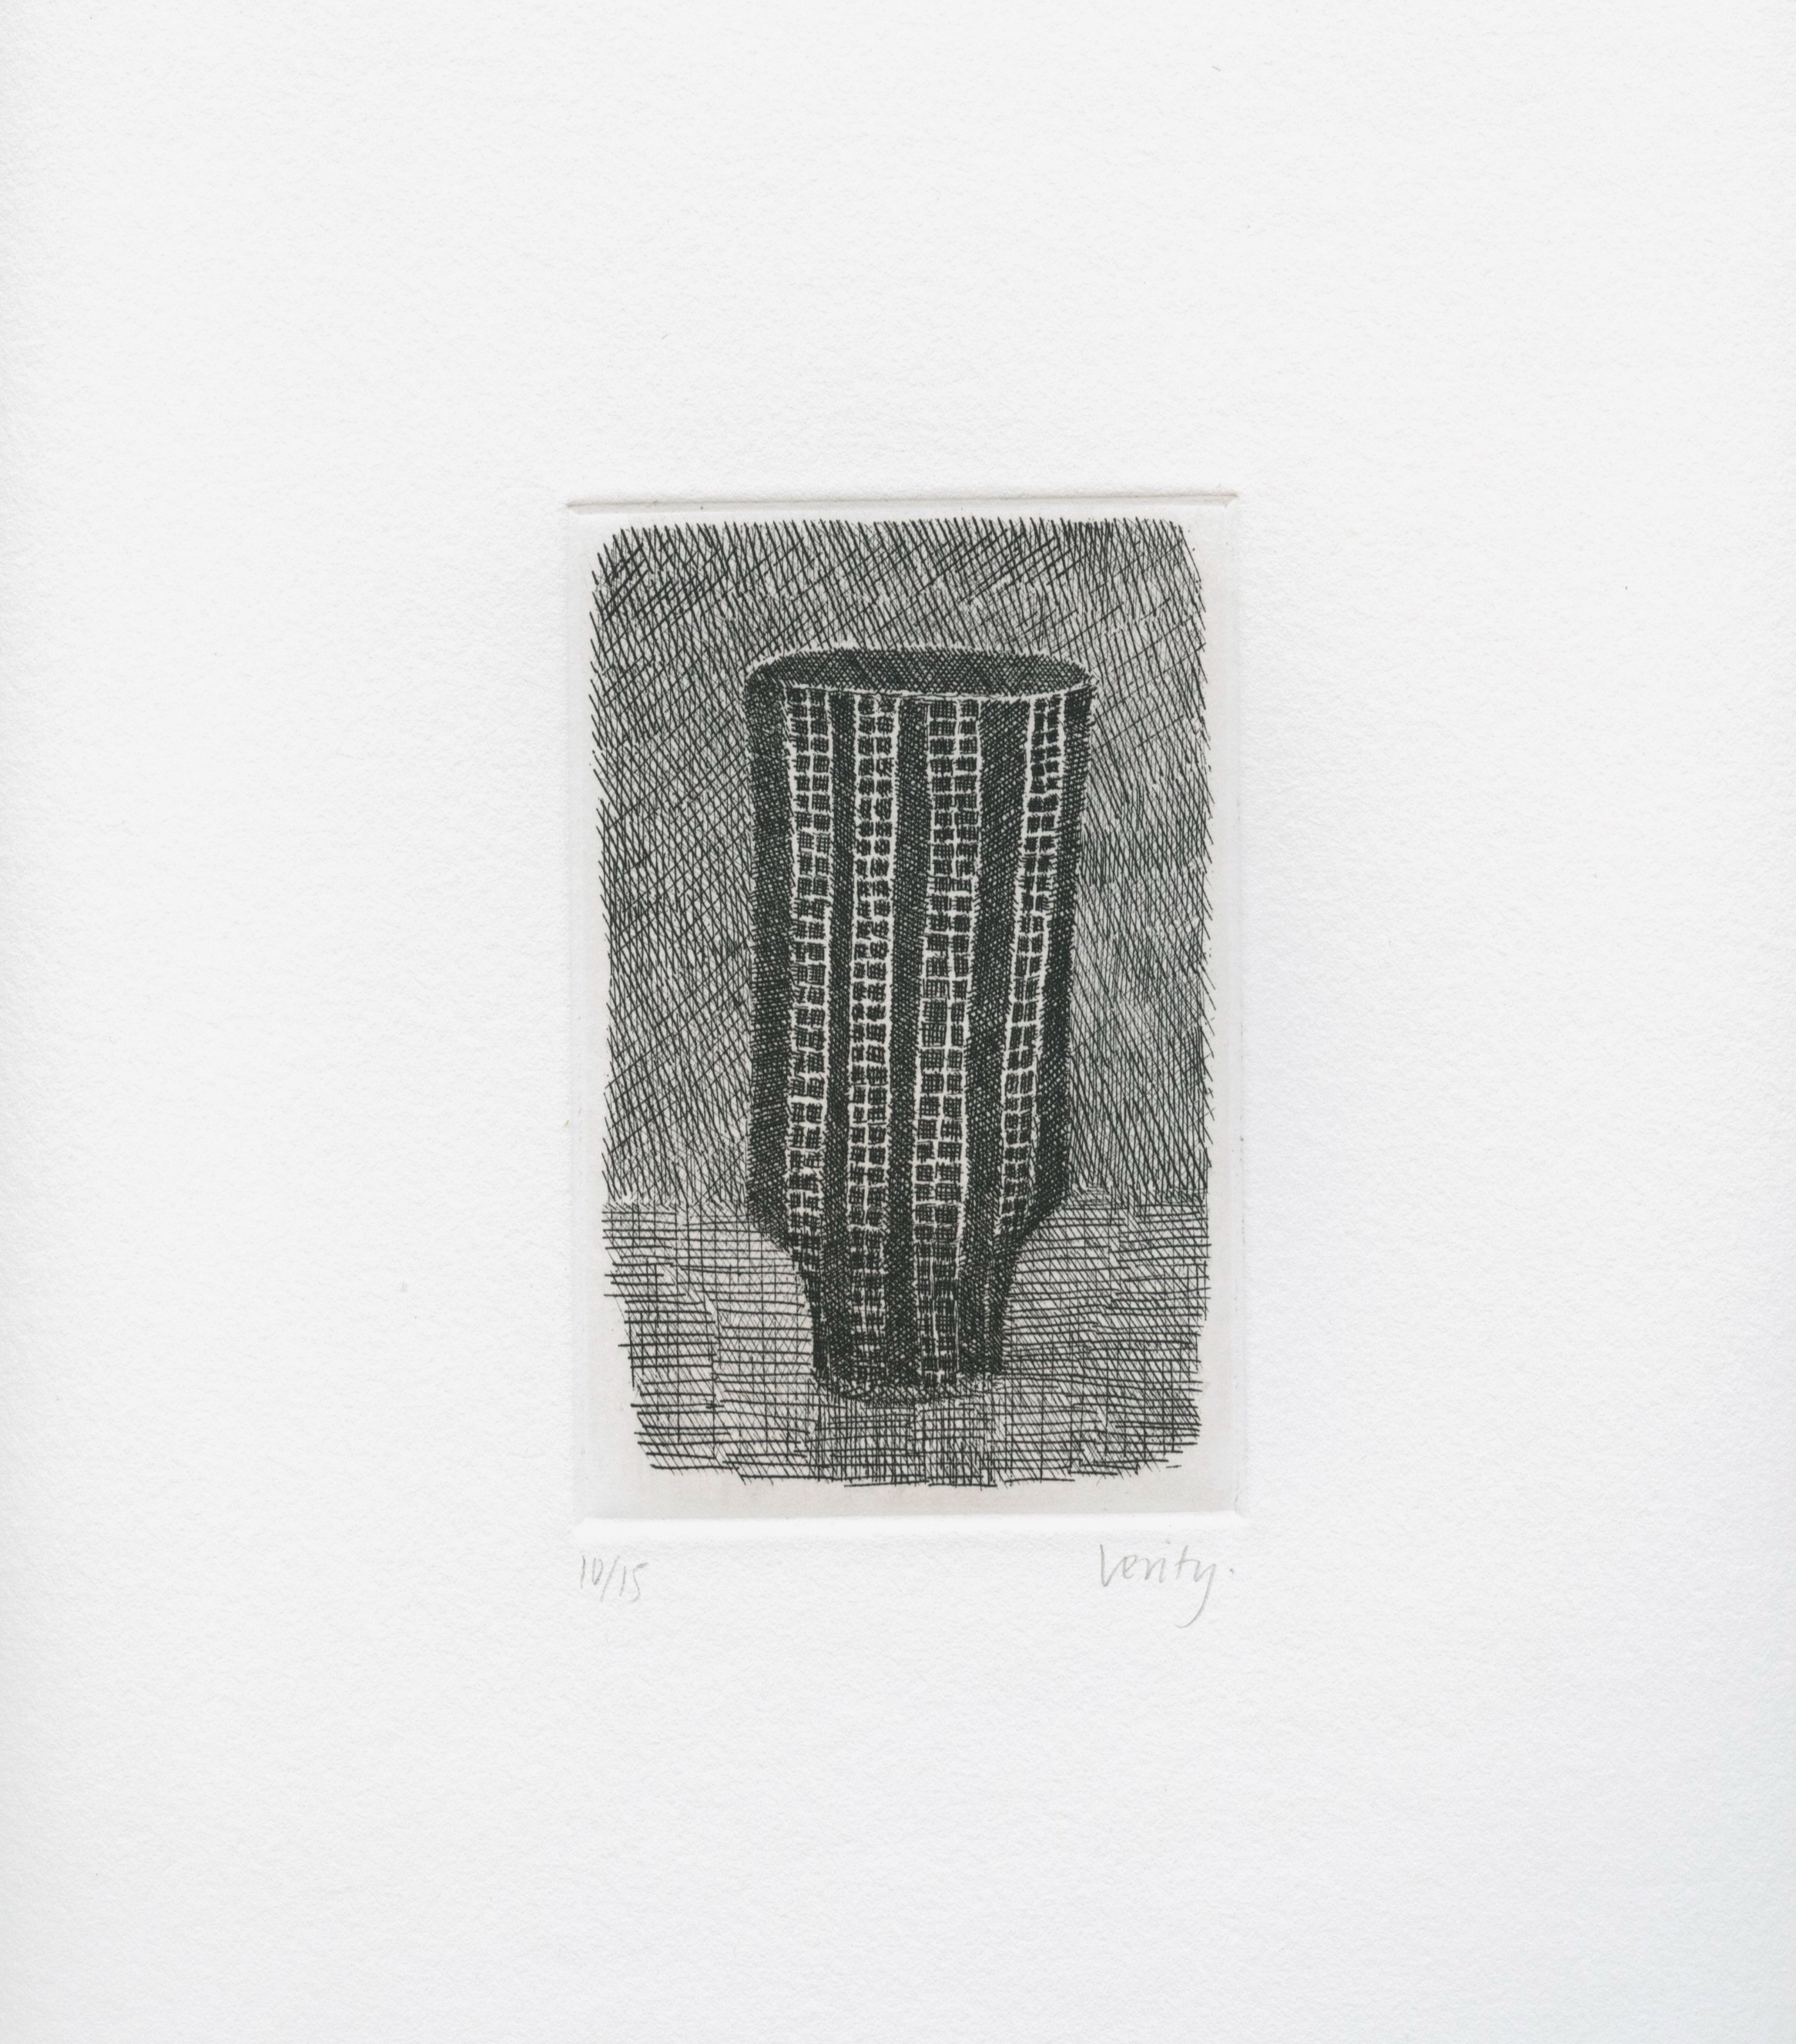 Lucie Rie Pot  2006 etching  32 x 25 cm